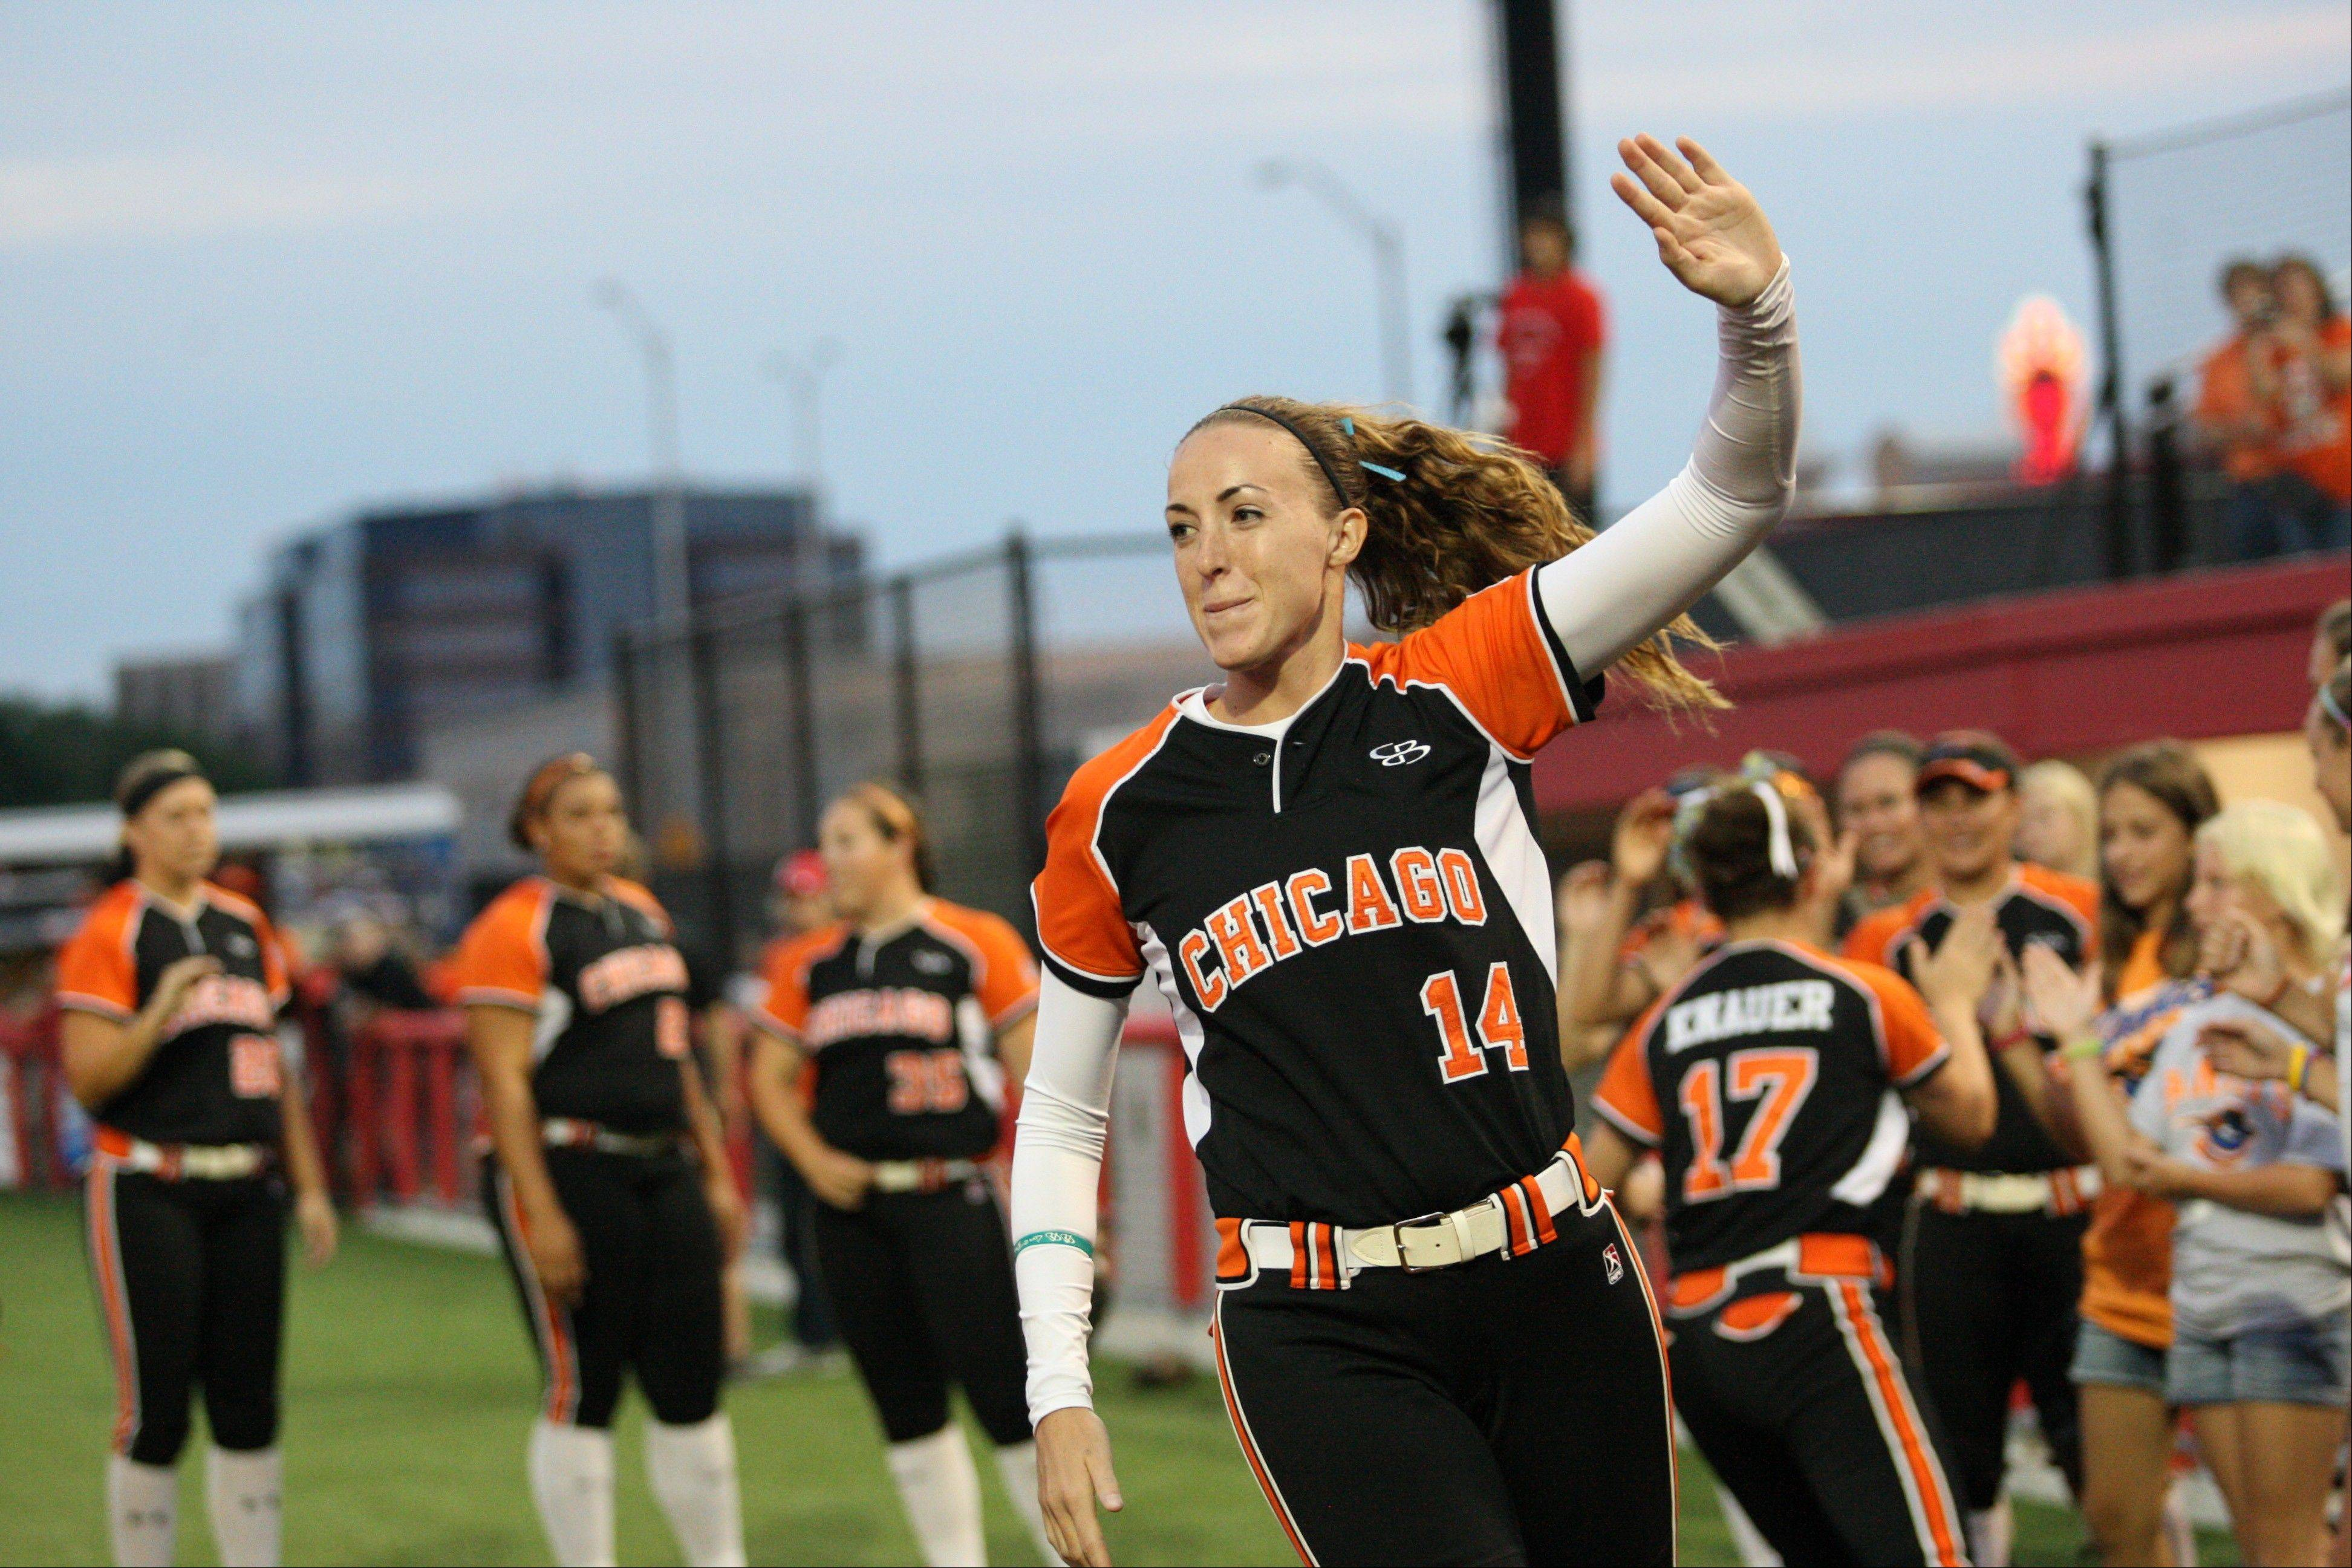 Nation's top softball talent headed to Rosemont for NPF championship series